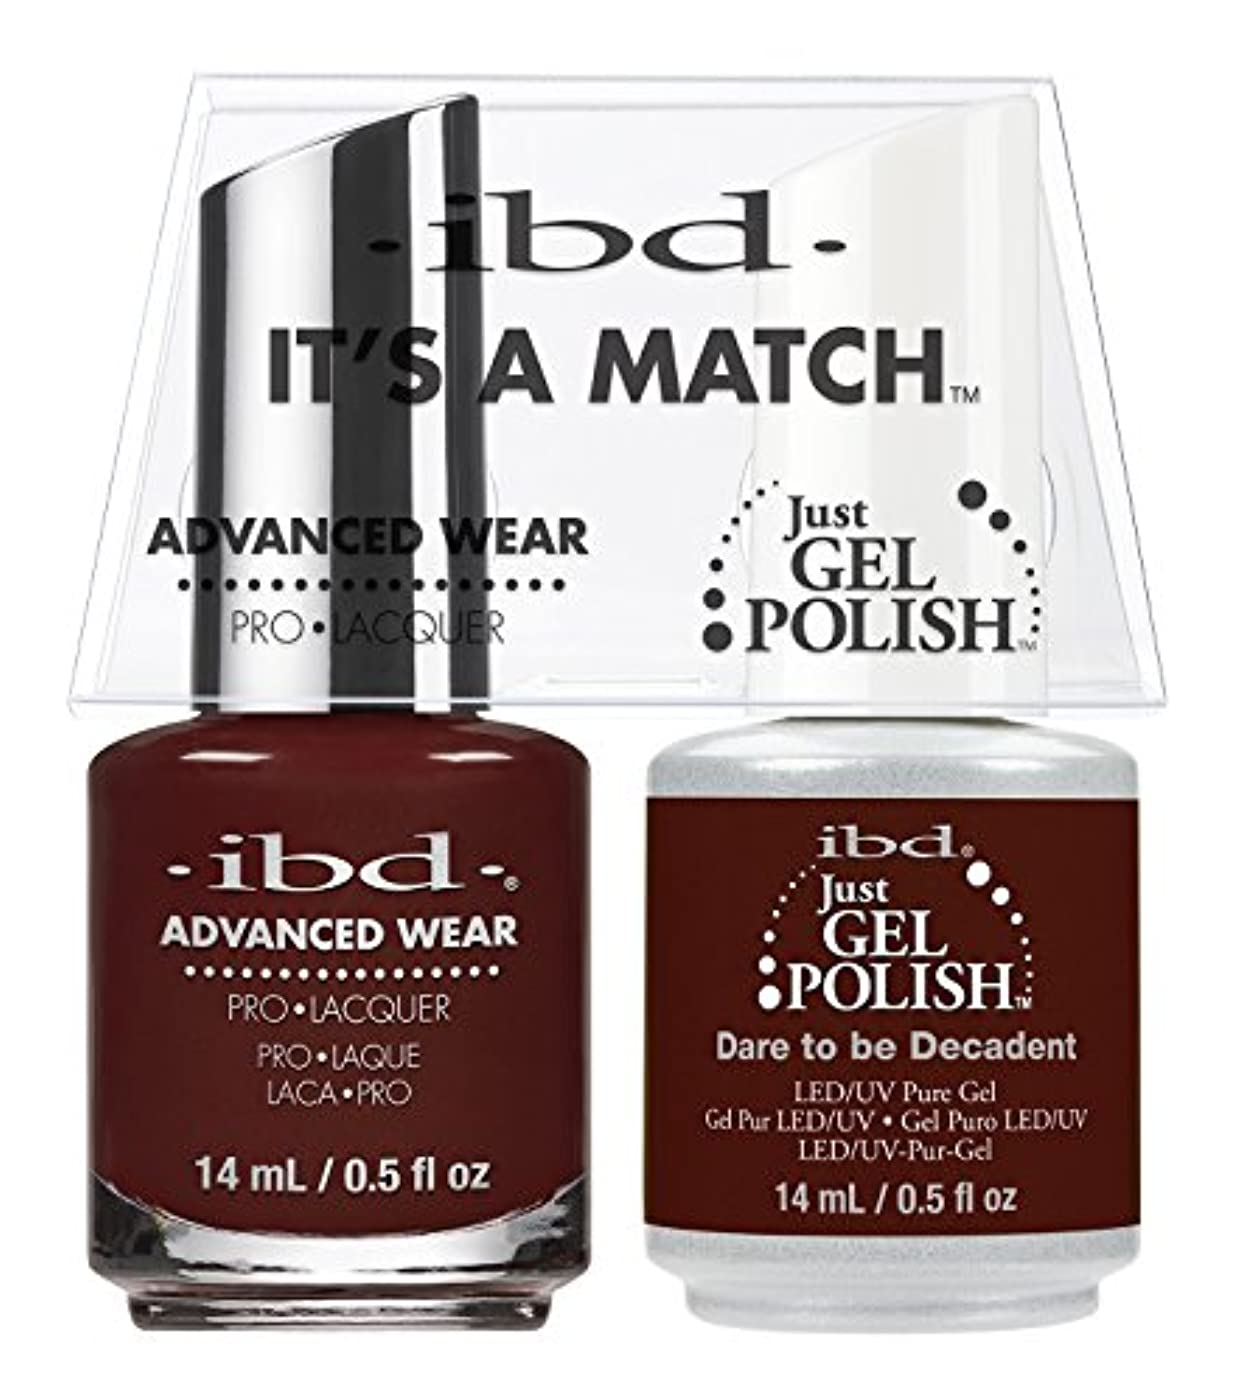 応援する放映組み合わせるibd - It's A Match -Duo Pack- Dare to be Decadent- 14 mL / 0.5 oz Each